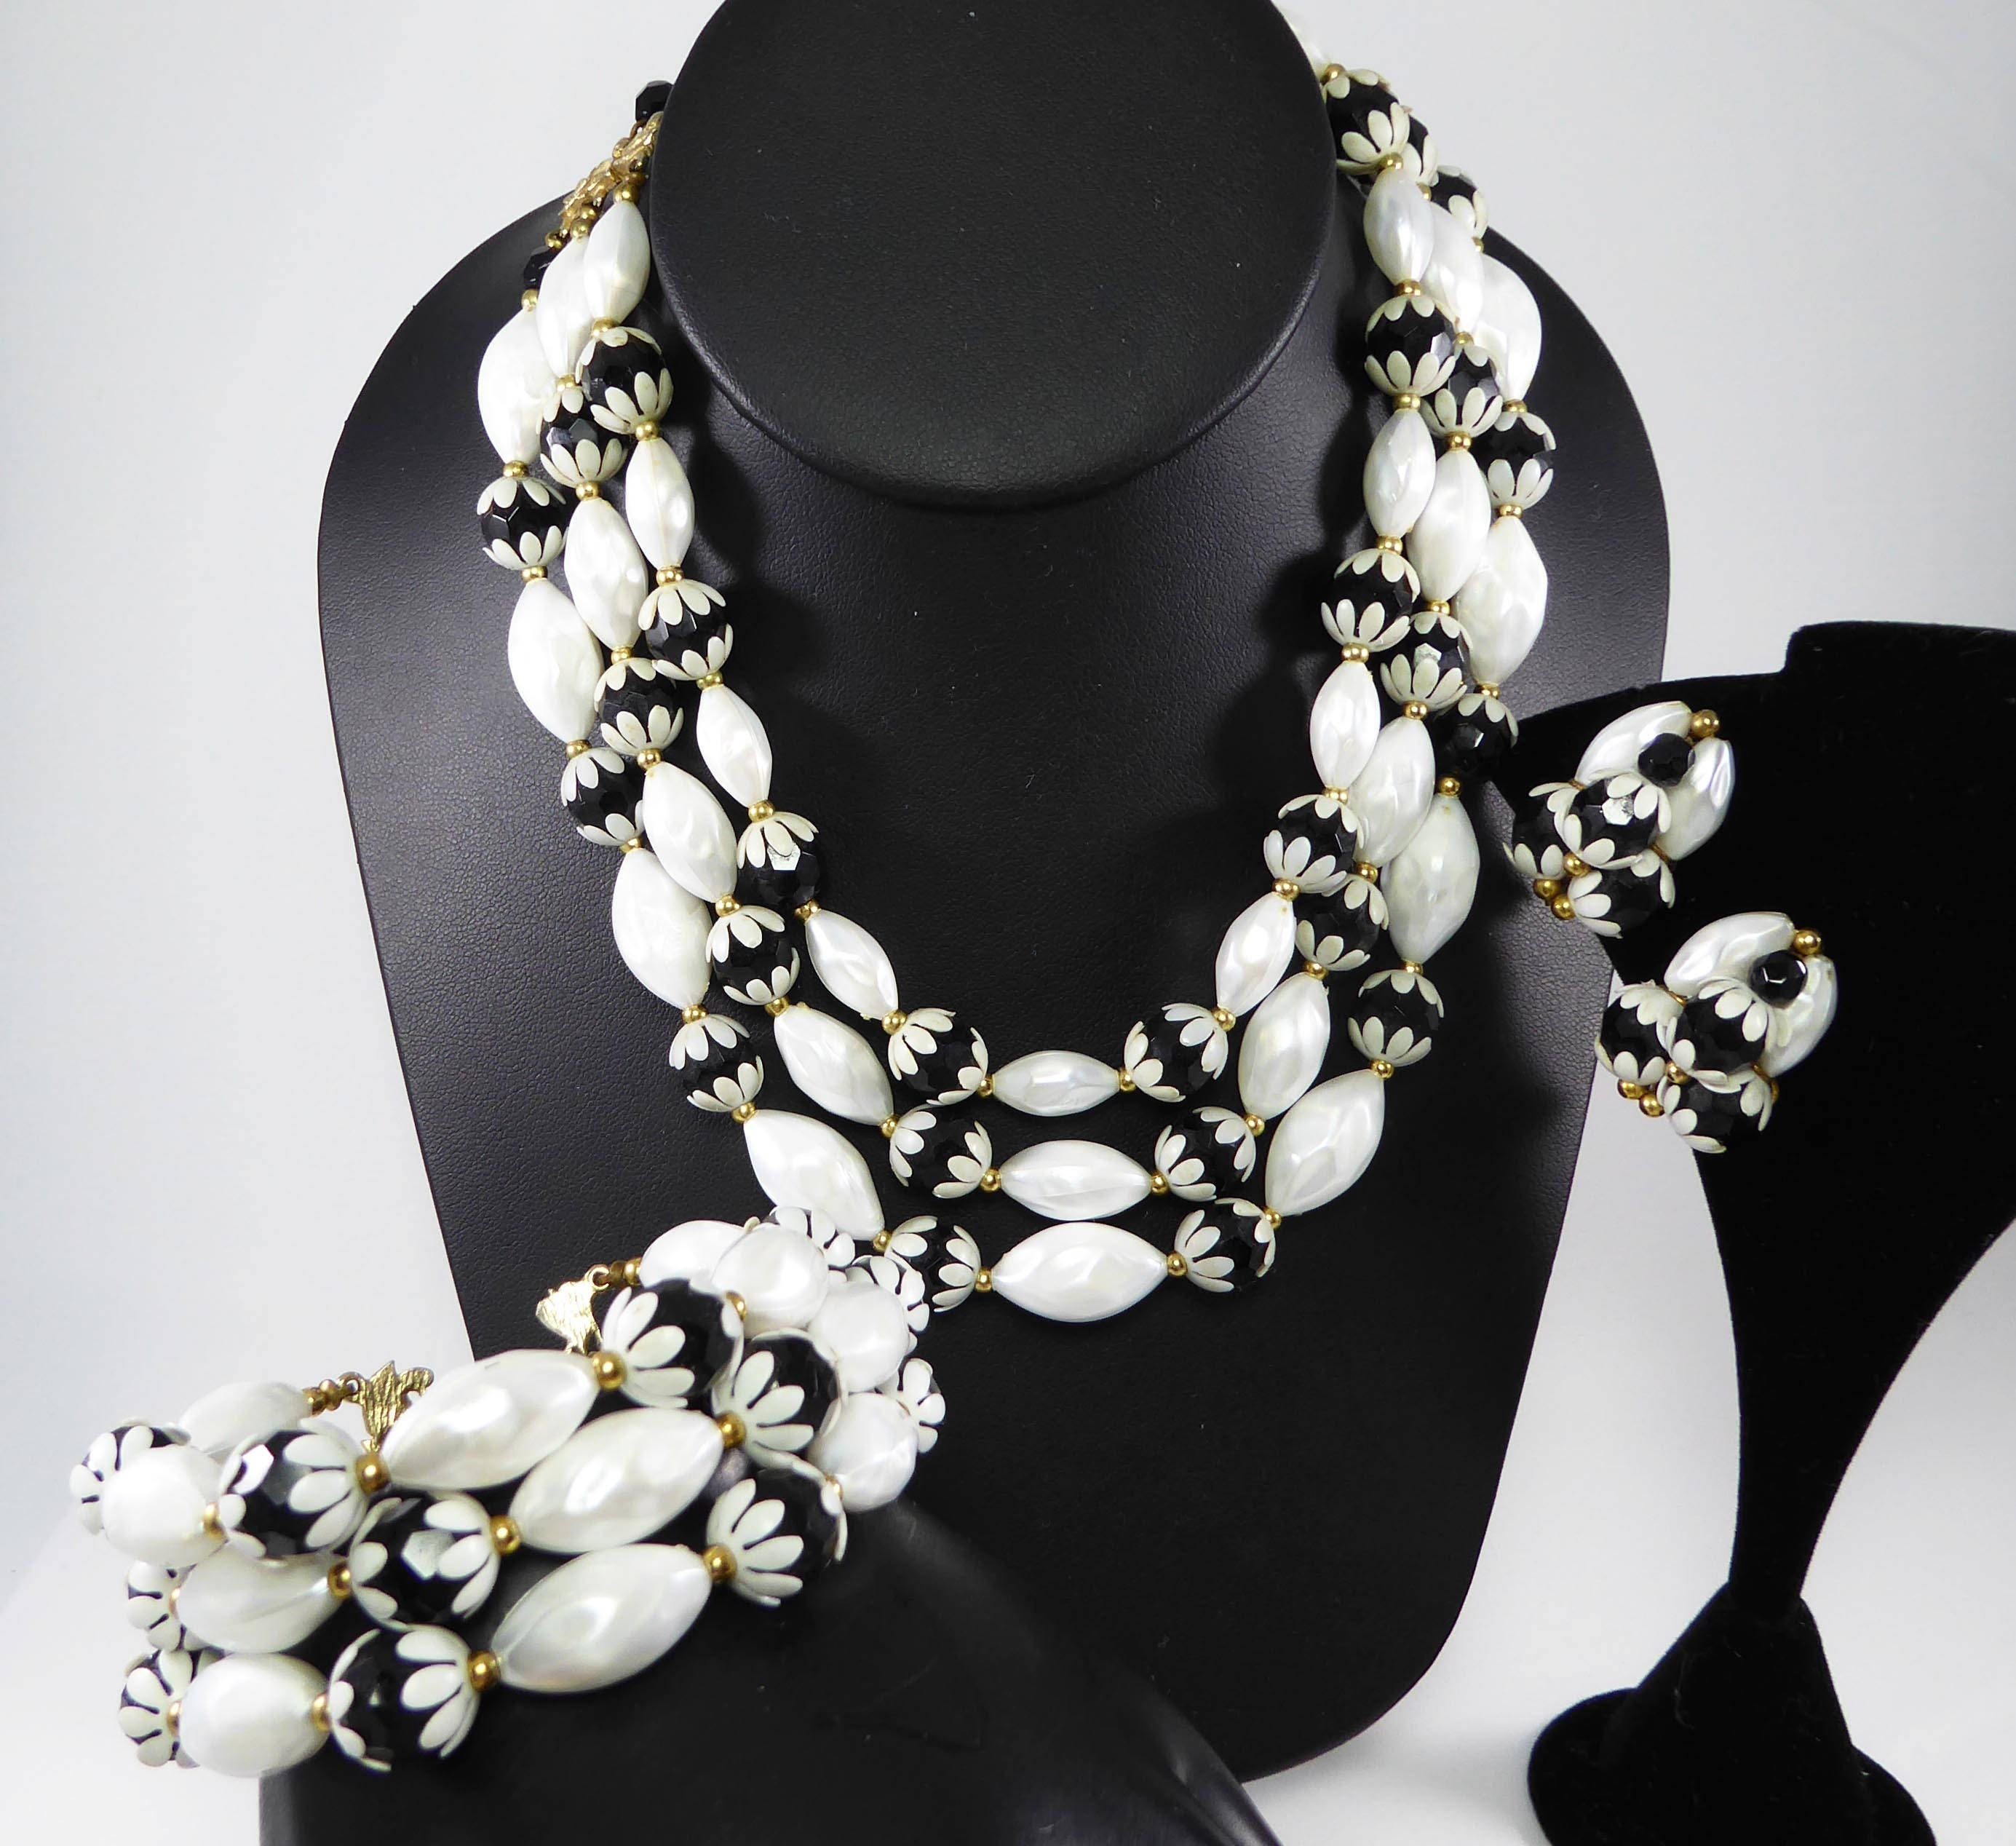 07f57a7424f Black and White Beaded Set, Multi Strand Necklace, Clip on Earrings ...